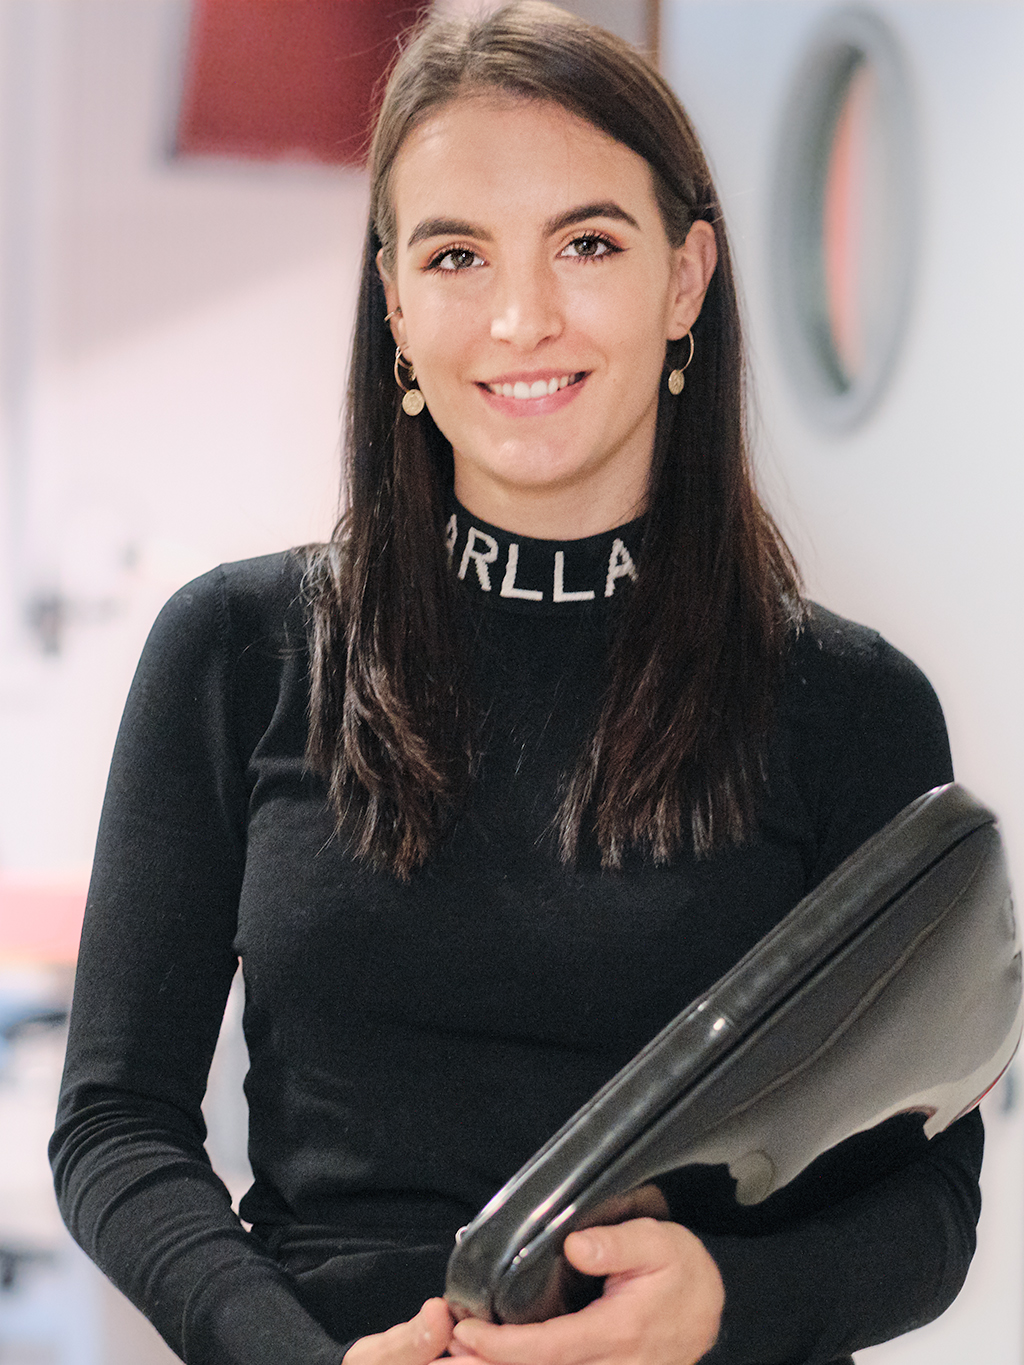 Kimberly Meurer